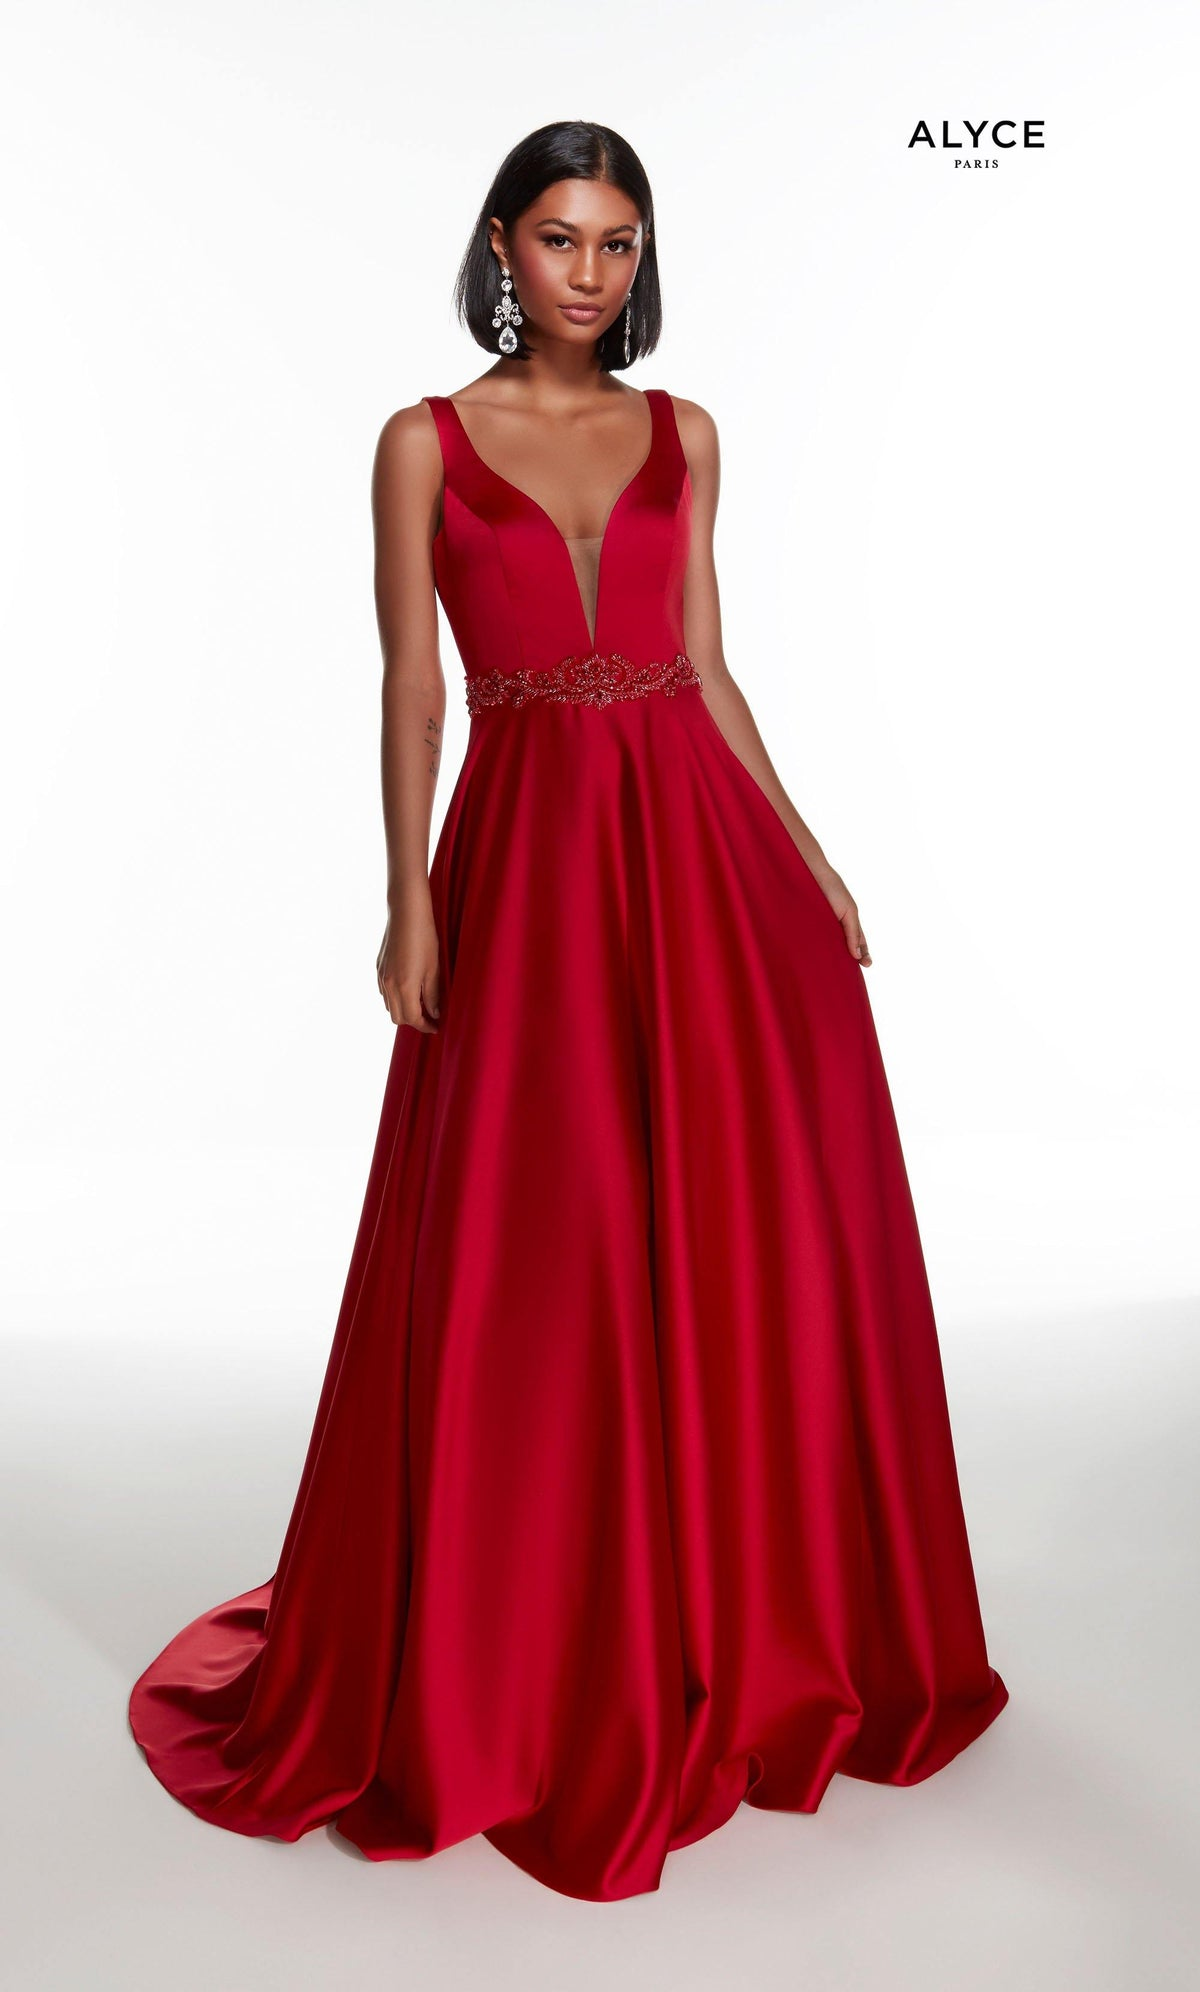 Red luminous satin A line formal dress with a plunging neckline and beaded natural waistline